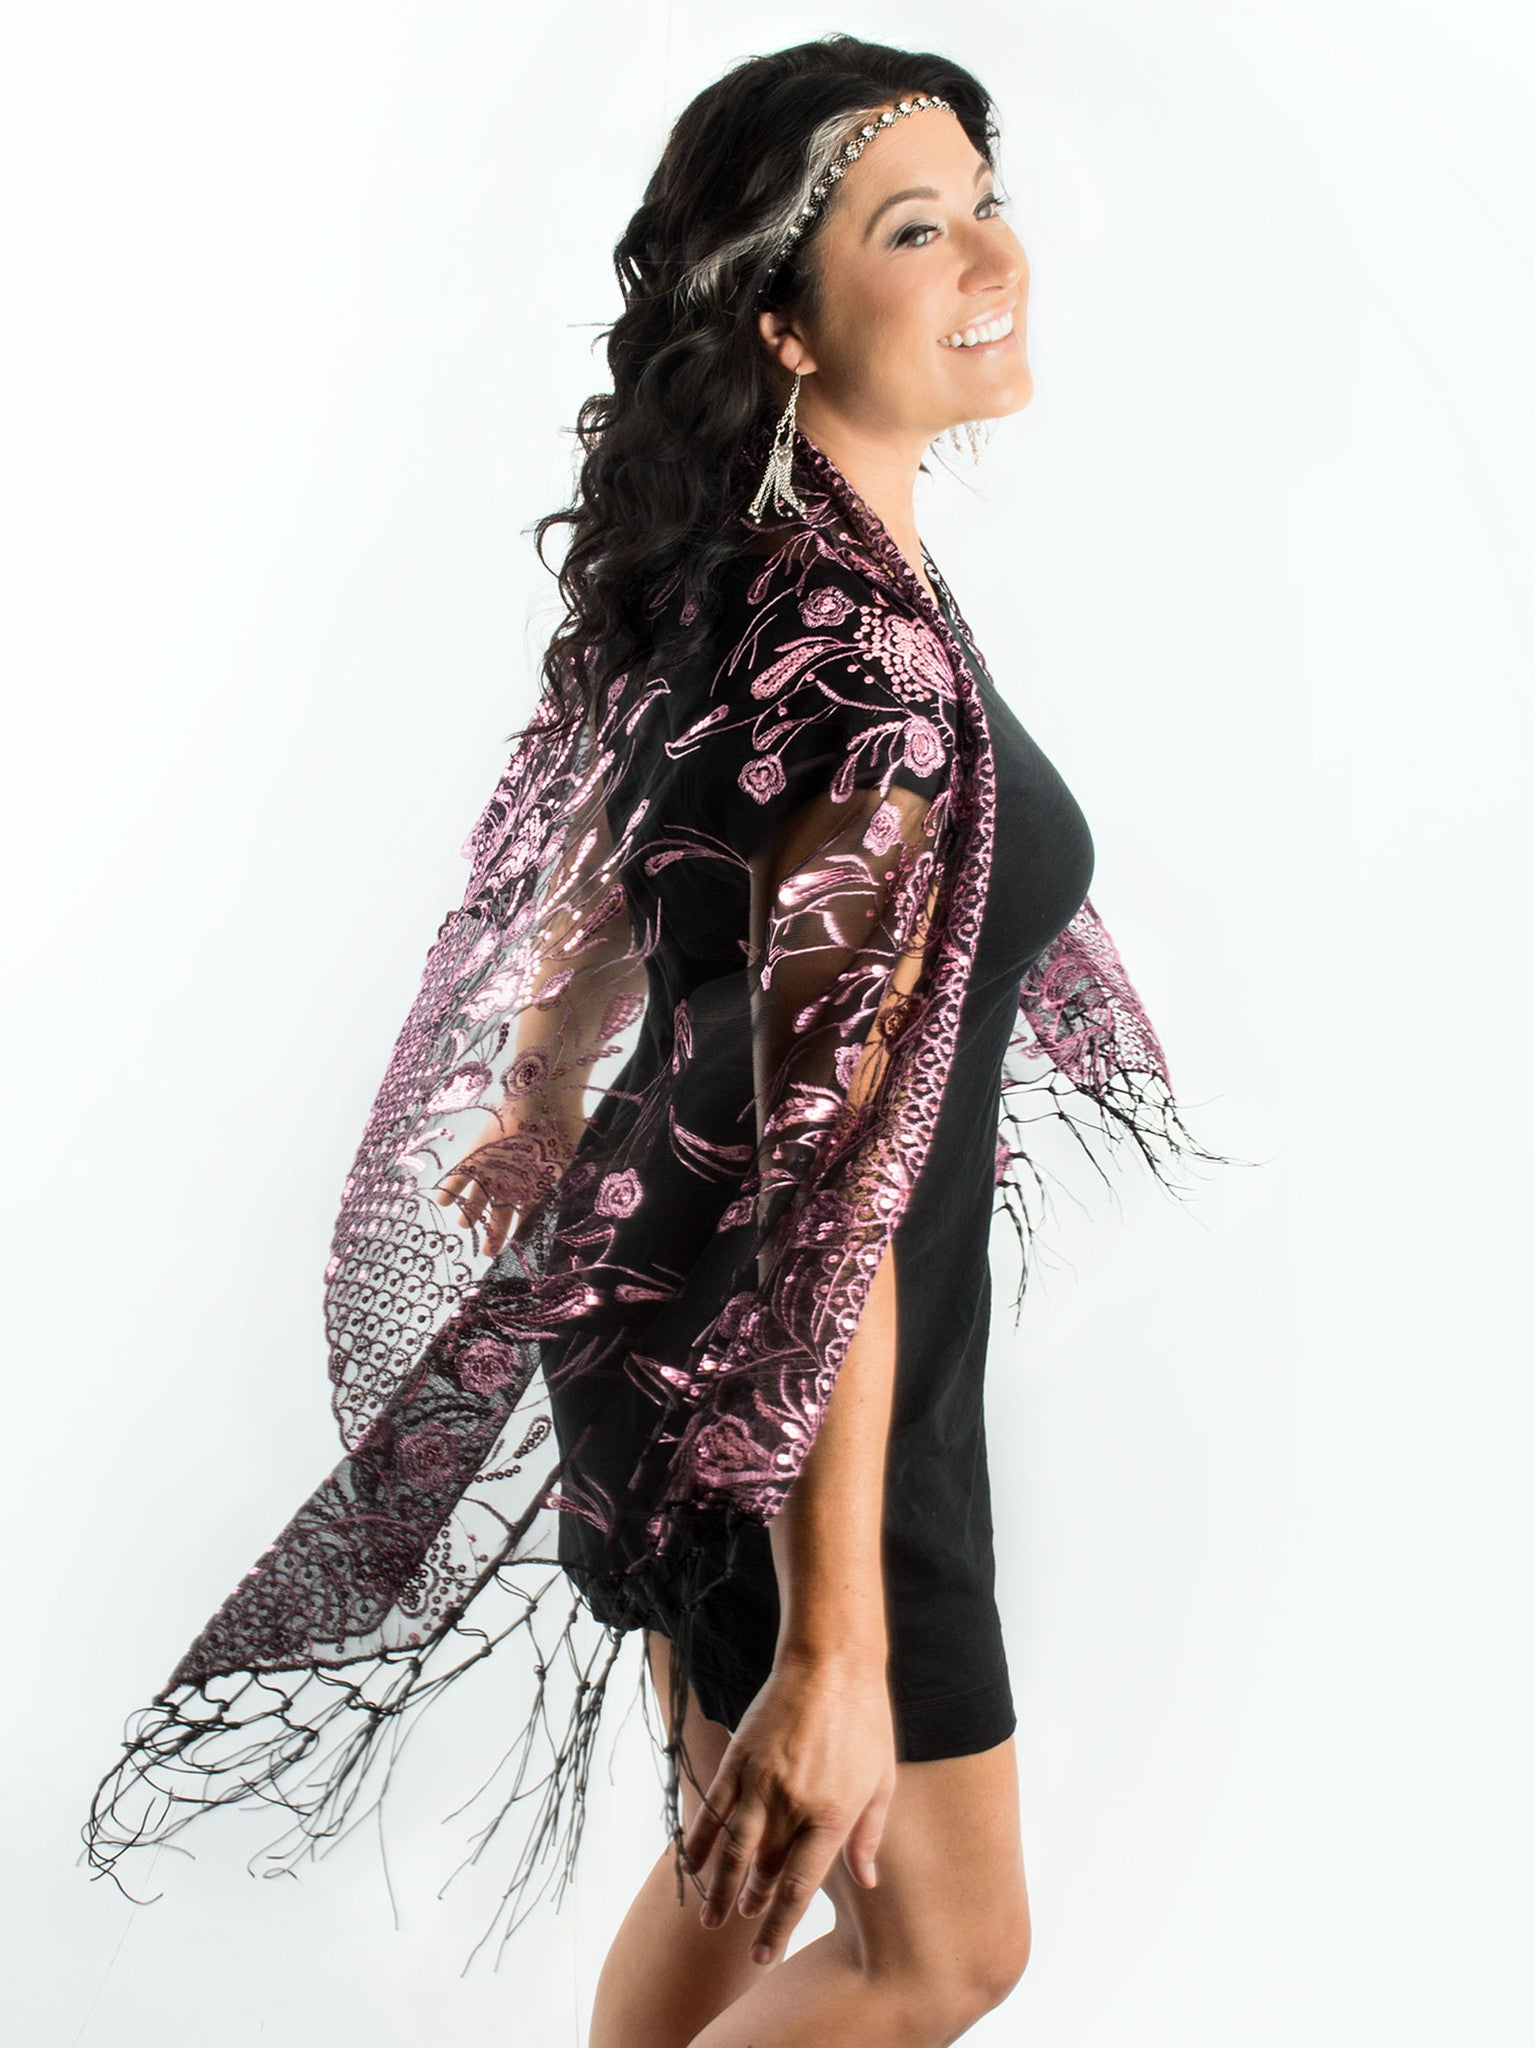 Scarves - Amaryllis Shawl, Vintage Inspired Sequin Evening Wrap, Embroidered Sequin Shawl, Scarf -() Bohomonde  - 8